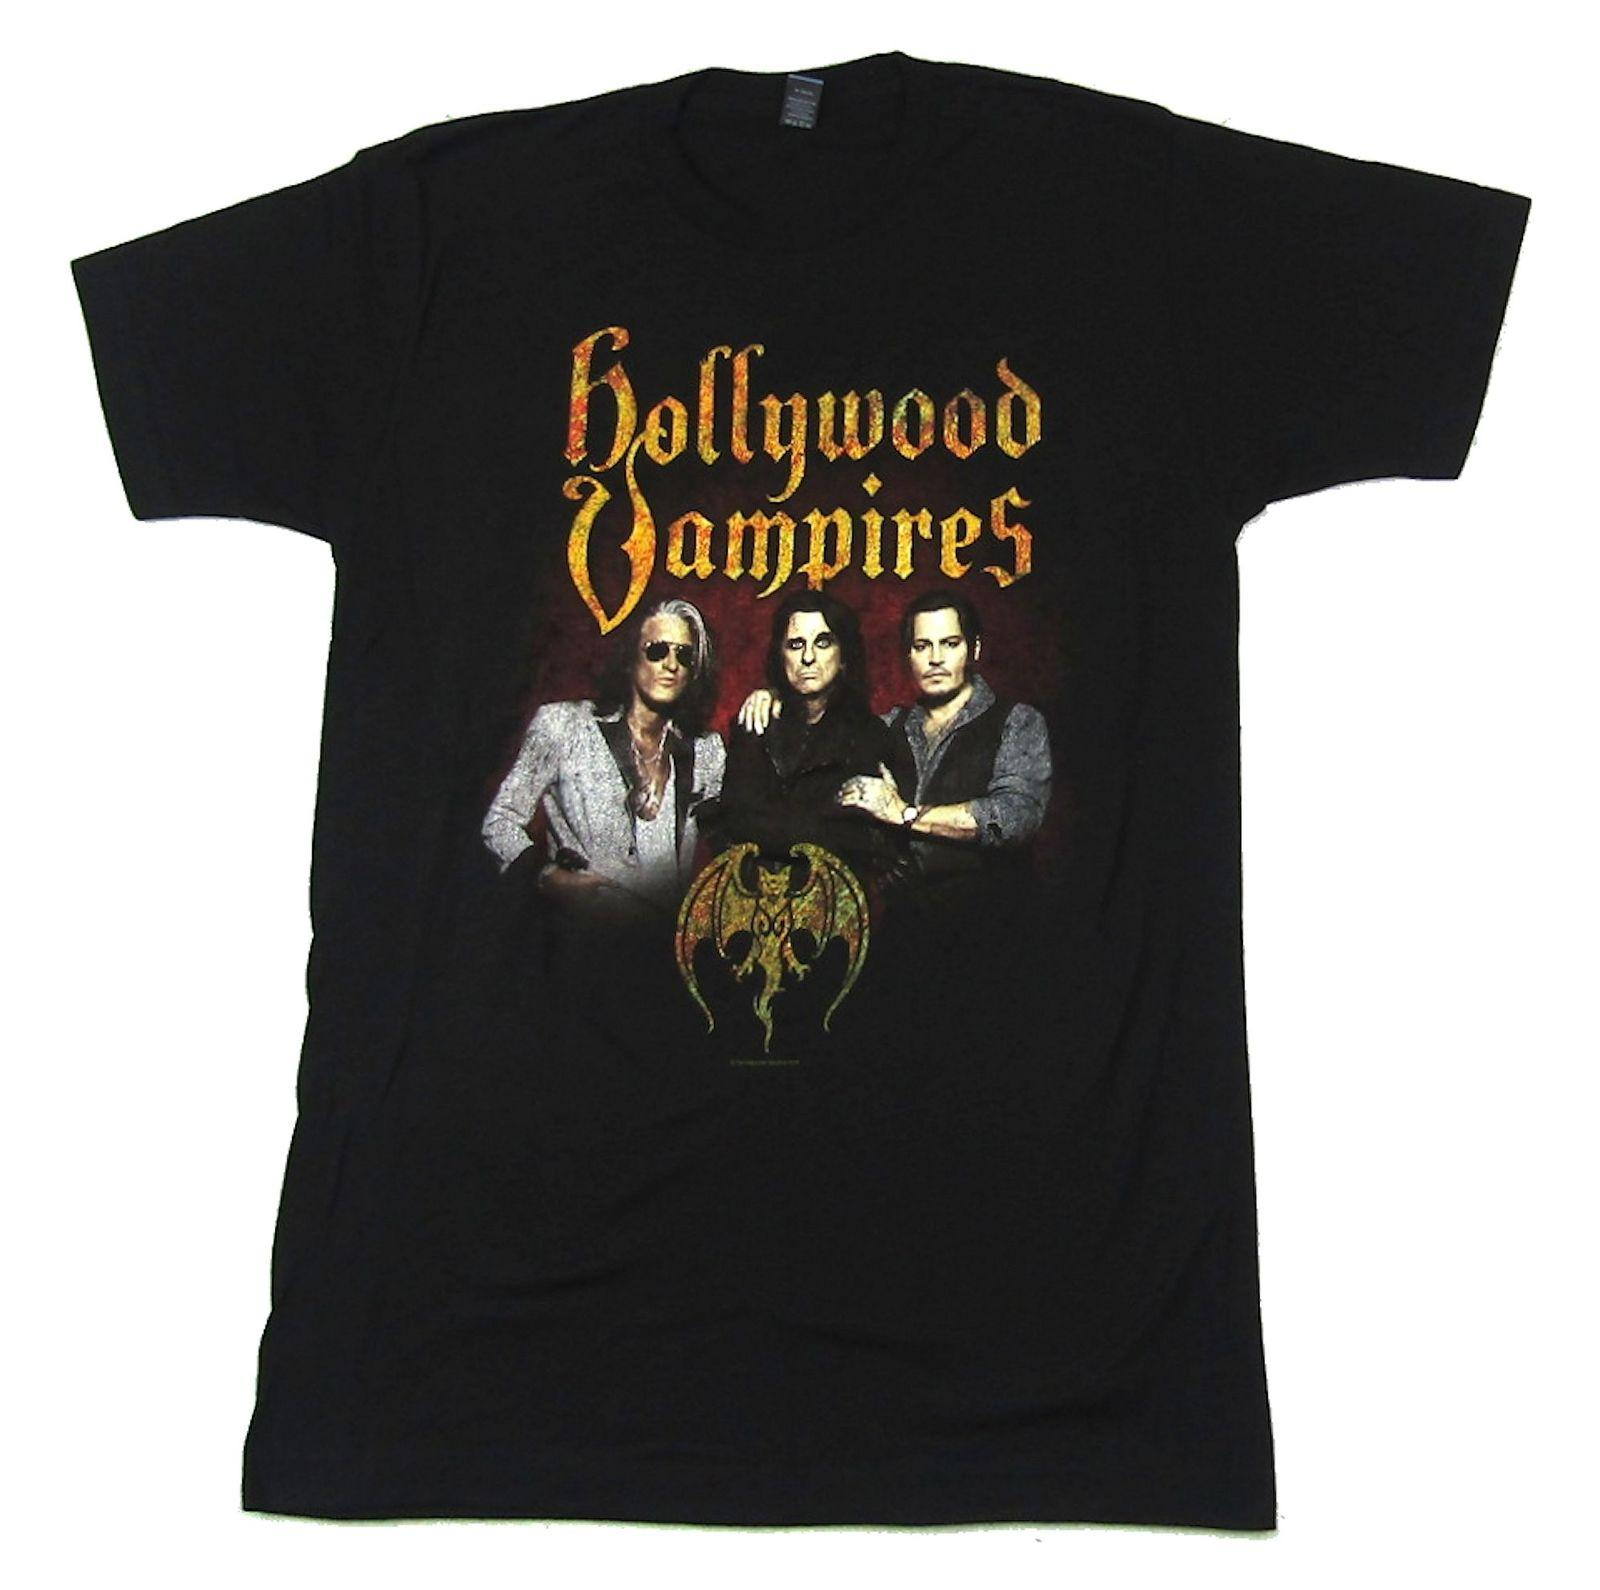 ca18a56eeeff Hollywood Vampires Raise The Dead Tour BALICE IN CHAINS TRI CELL BLACK T  SHIRT NEW OFFICIAL ADULT Men Women Unisex Fashion Tshirt Free Cool Tshirts  Retro T ...